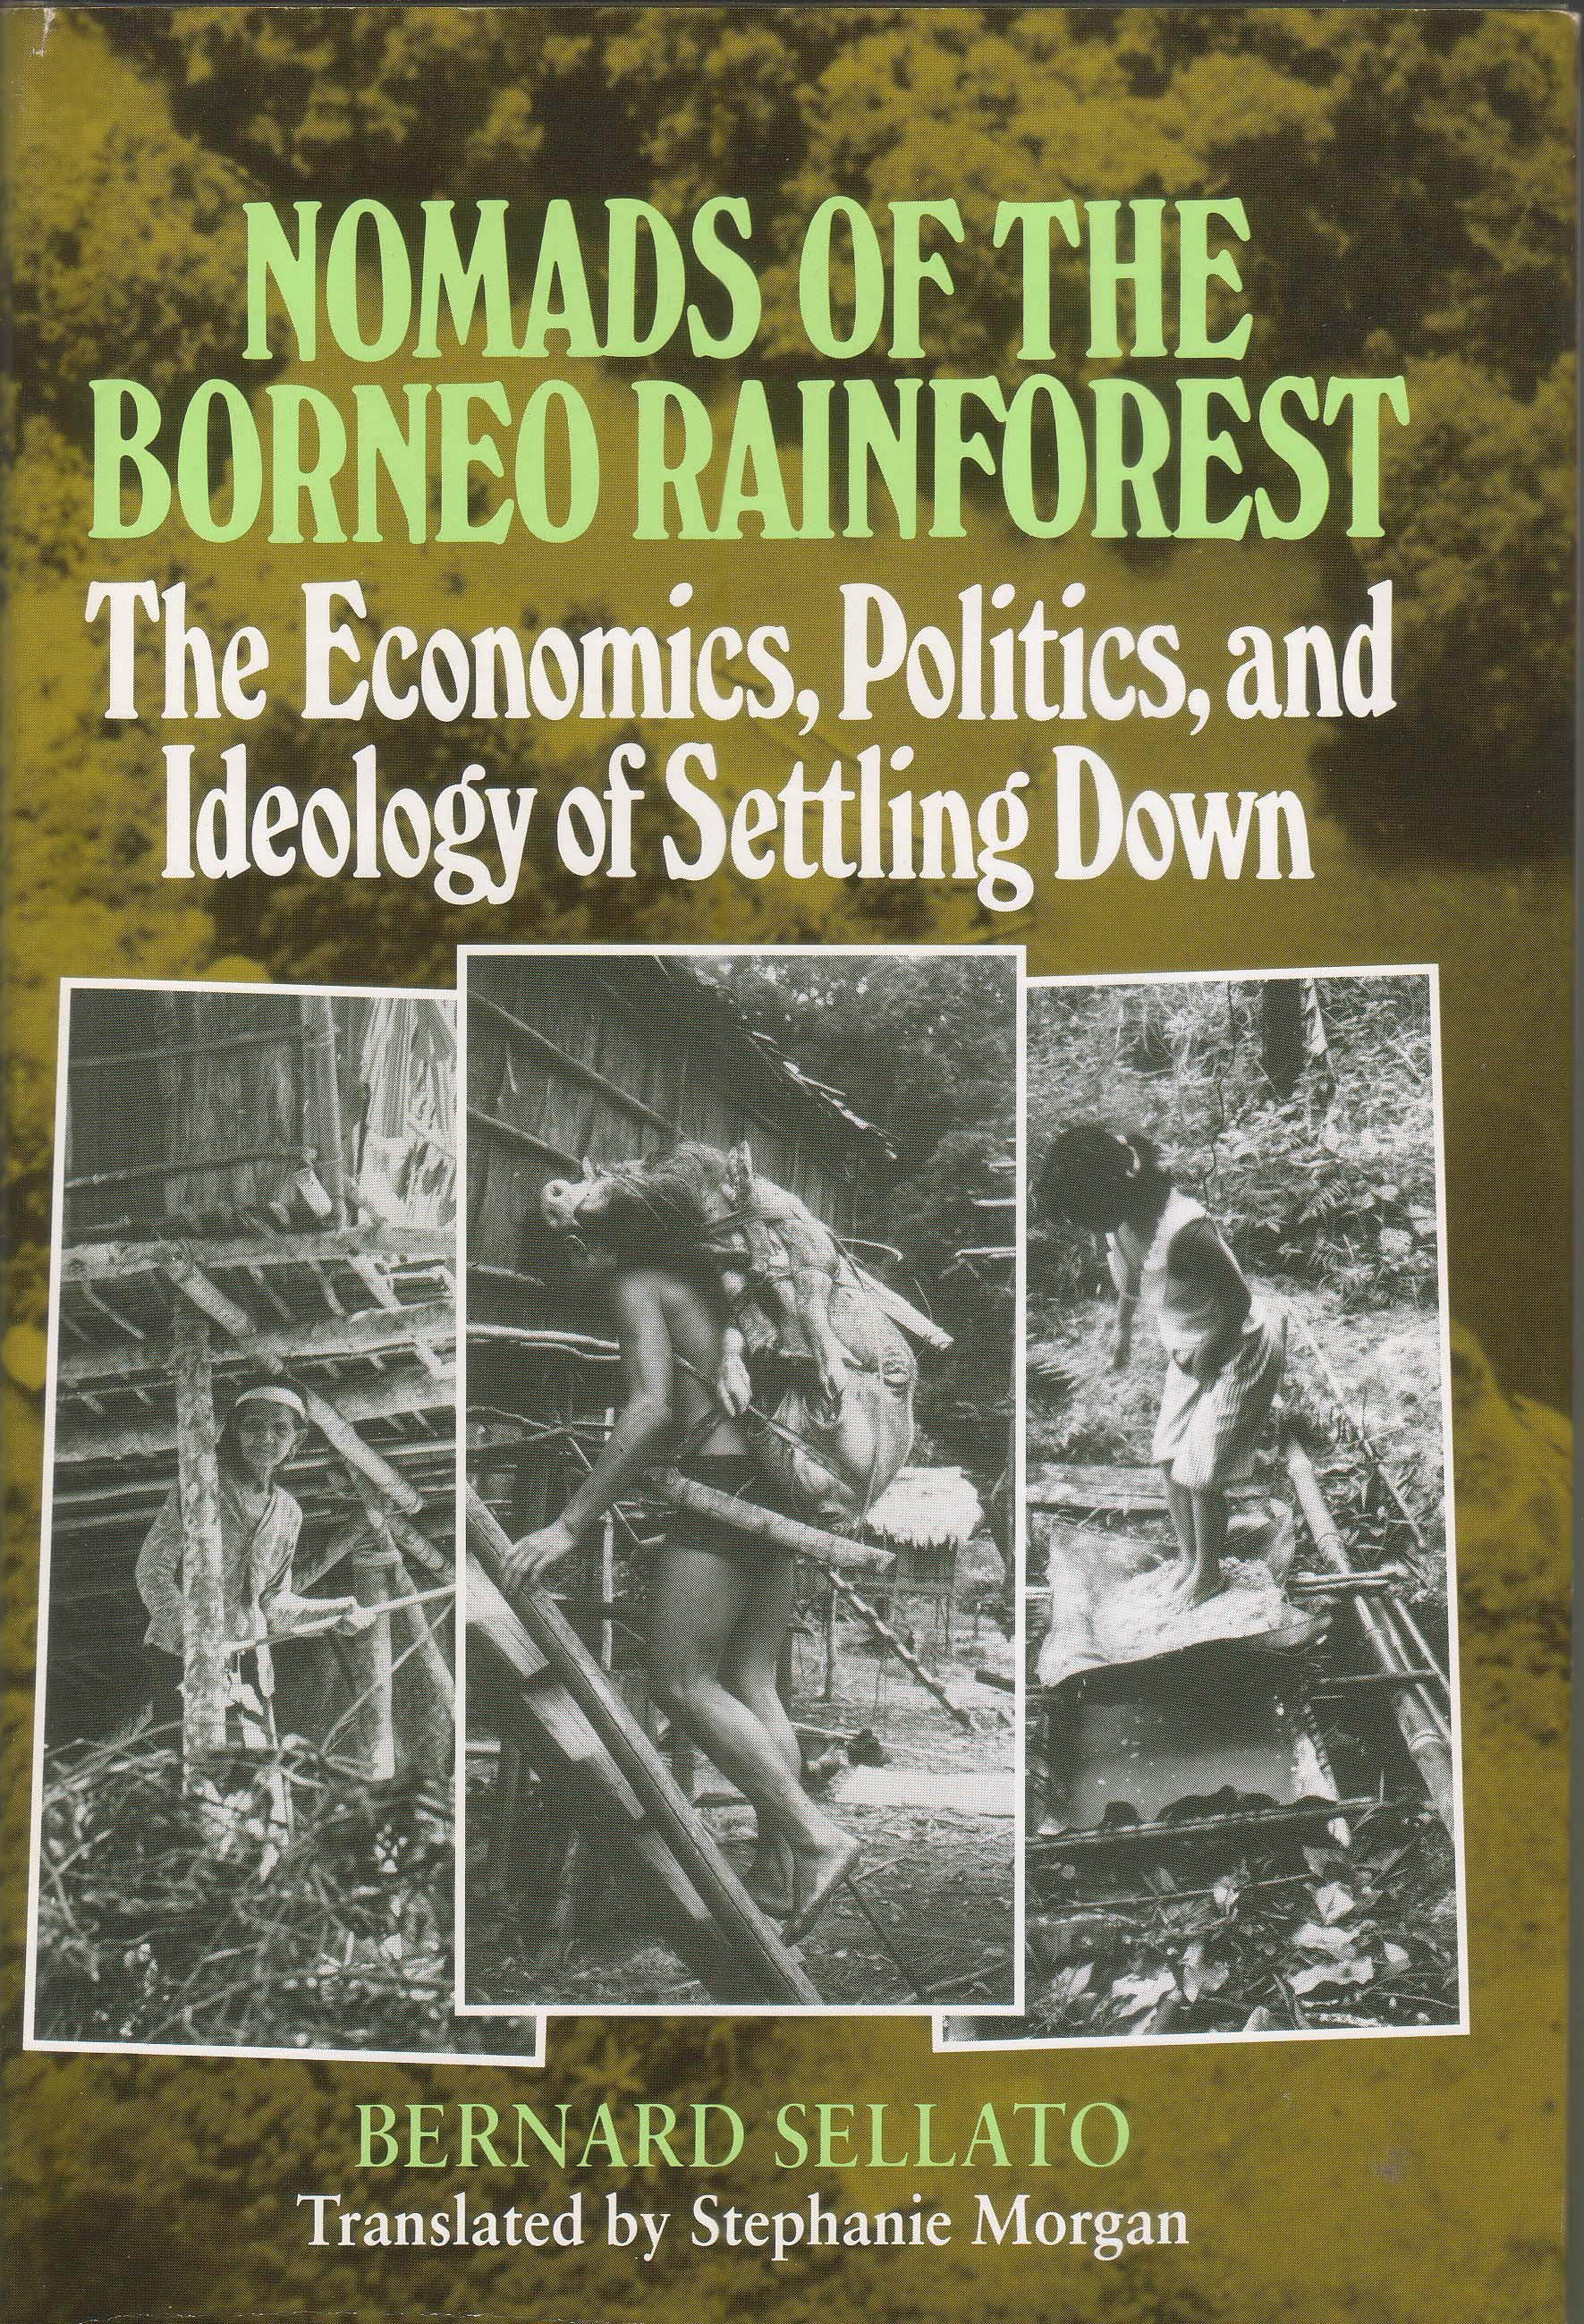 Nomads of the Borneo Rainforest The Economics Politics and Ideology of Settling Down Bernard Sellato